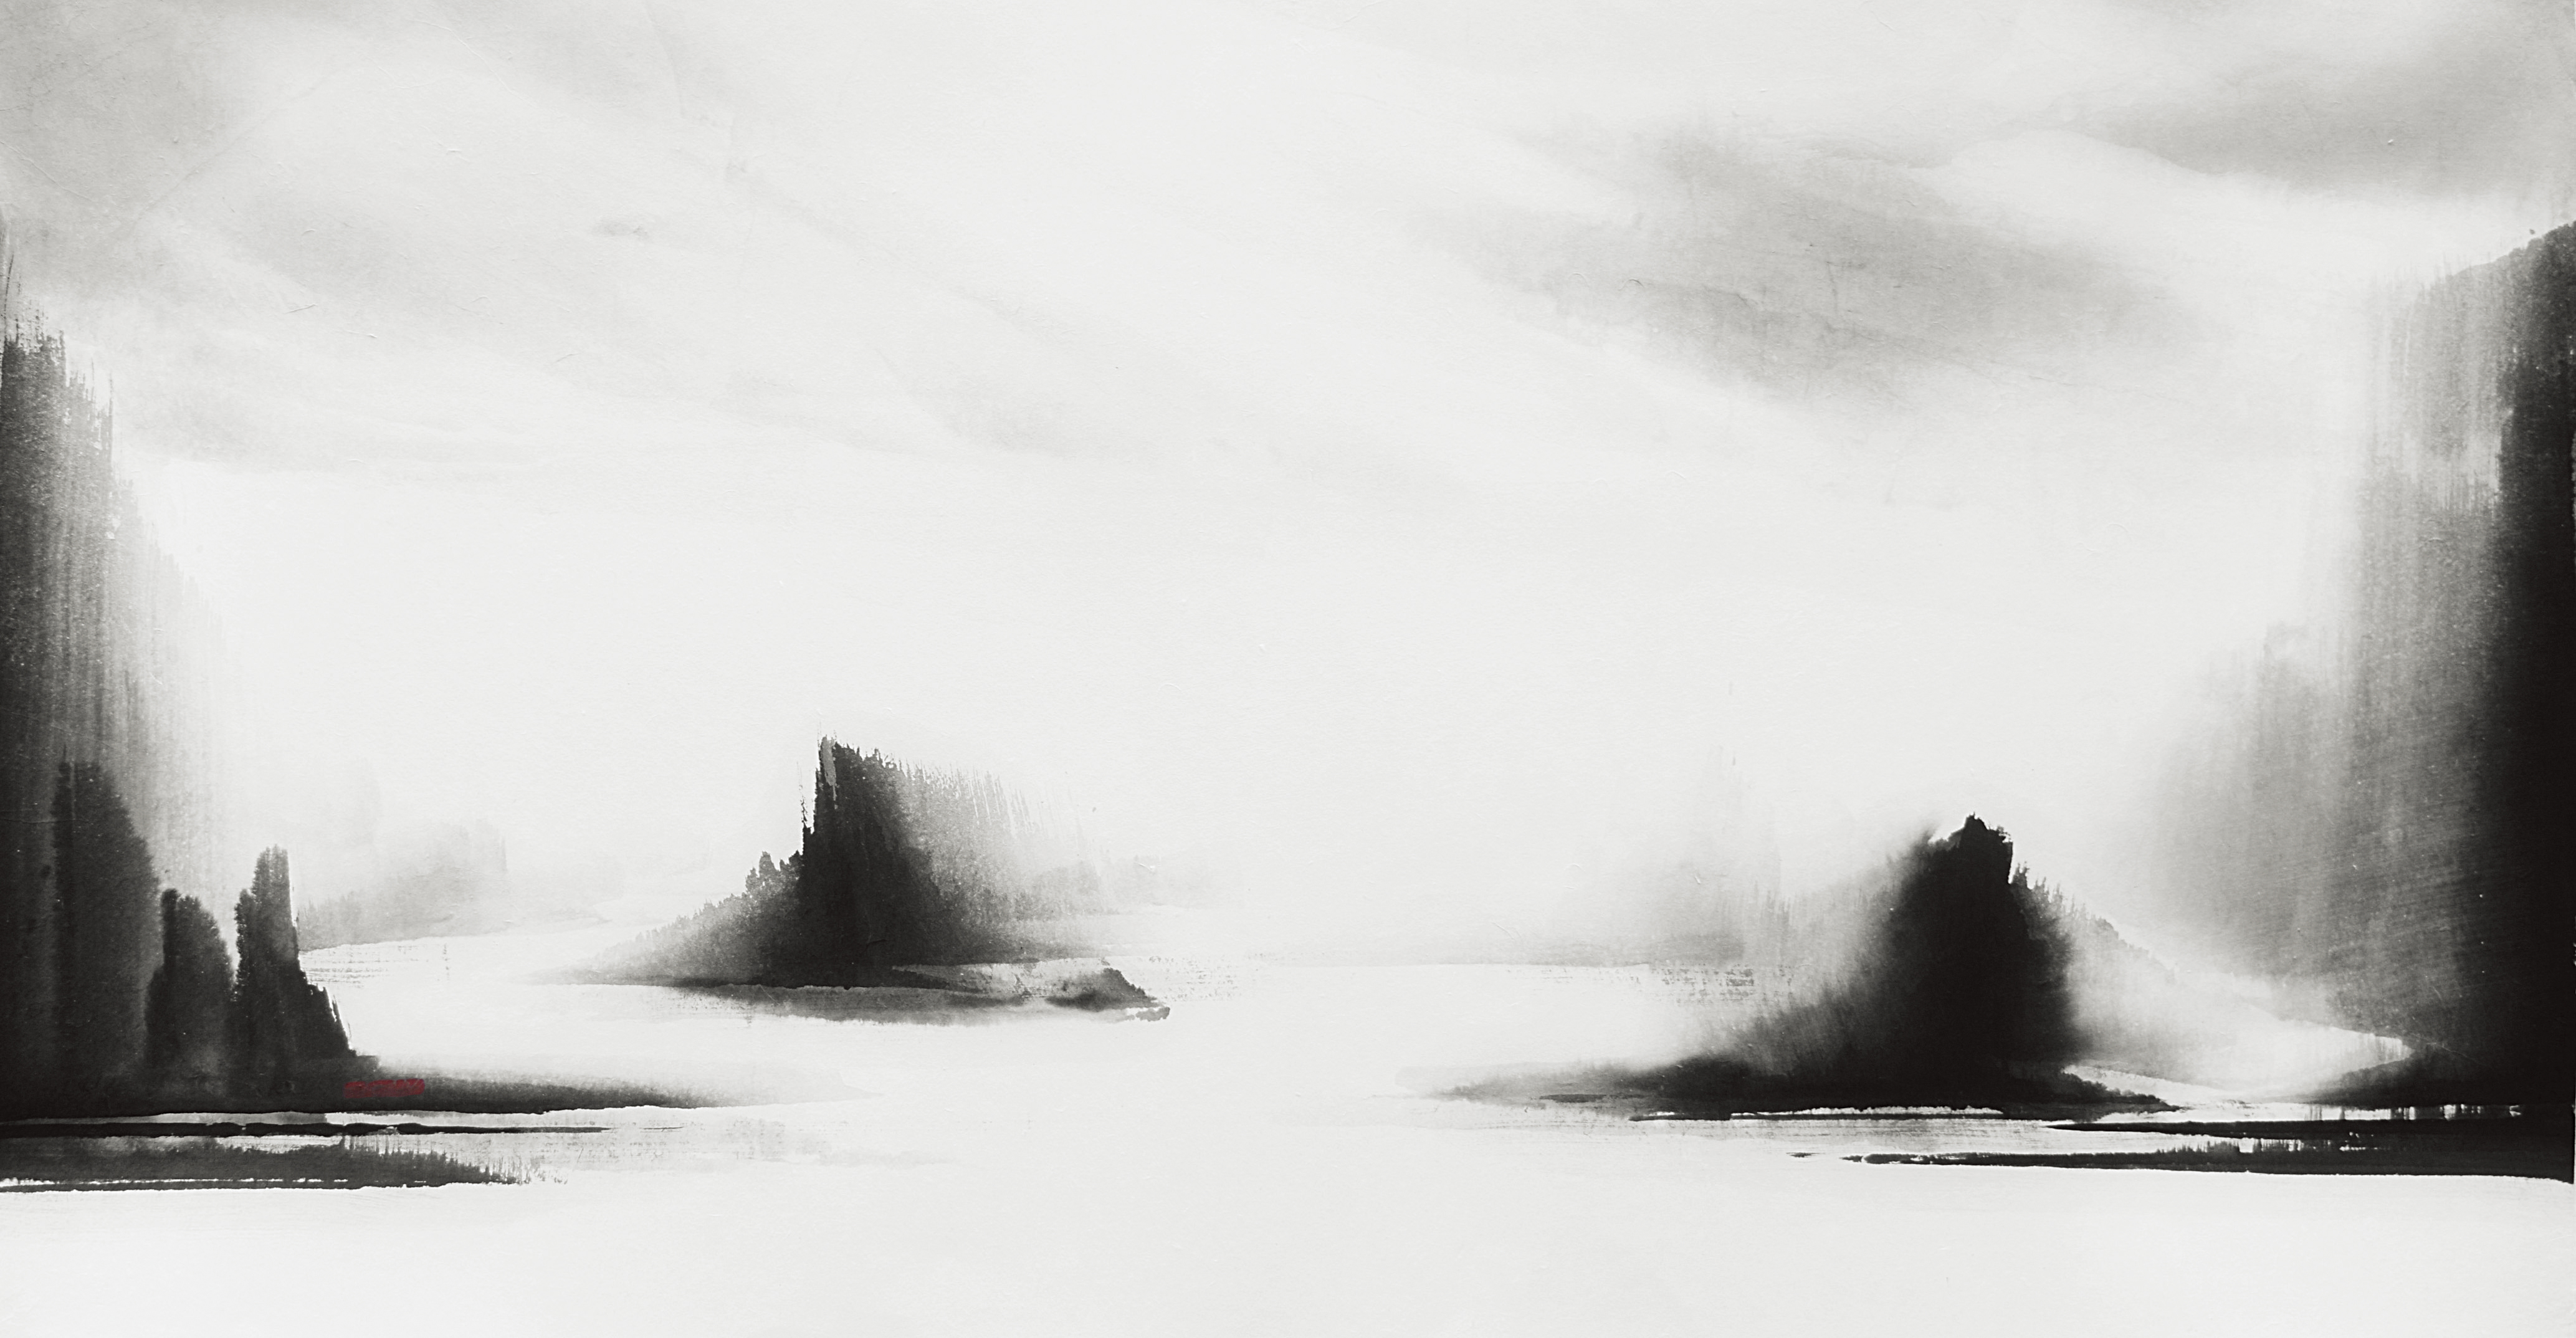 HONG Purume_At This Moment_Ink on Paper_88x160cm_2018